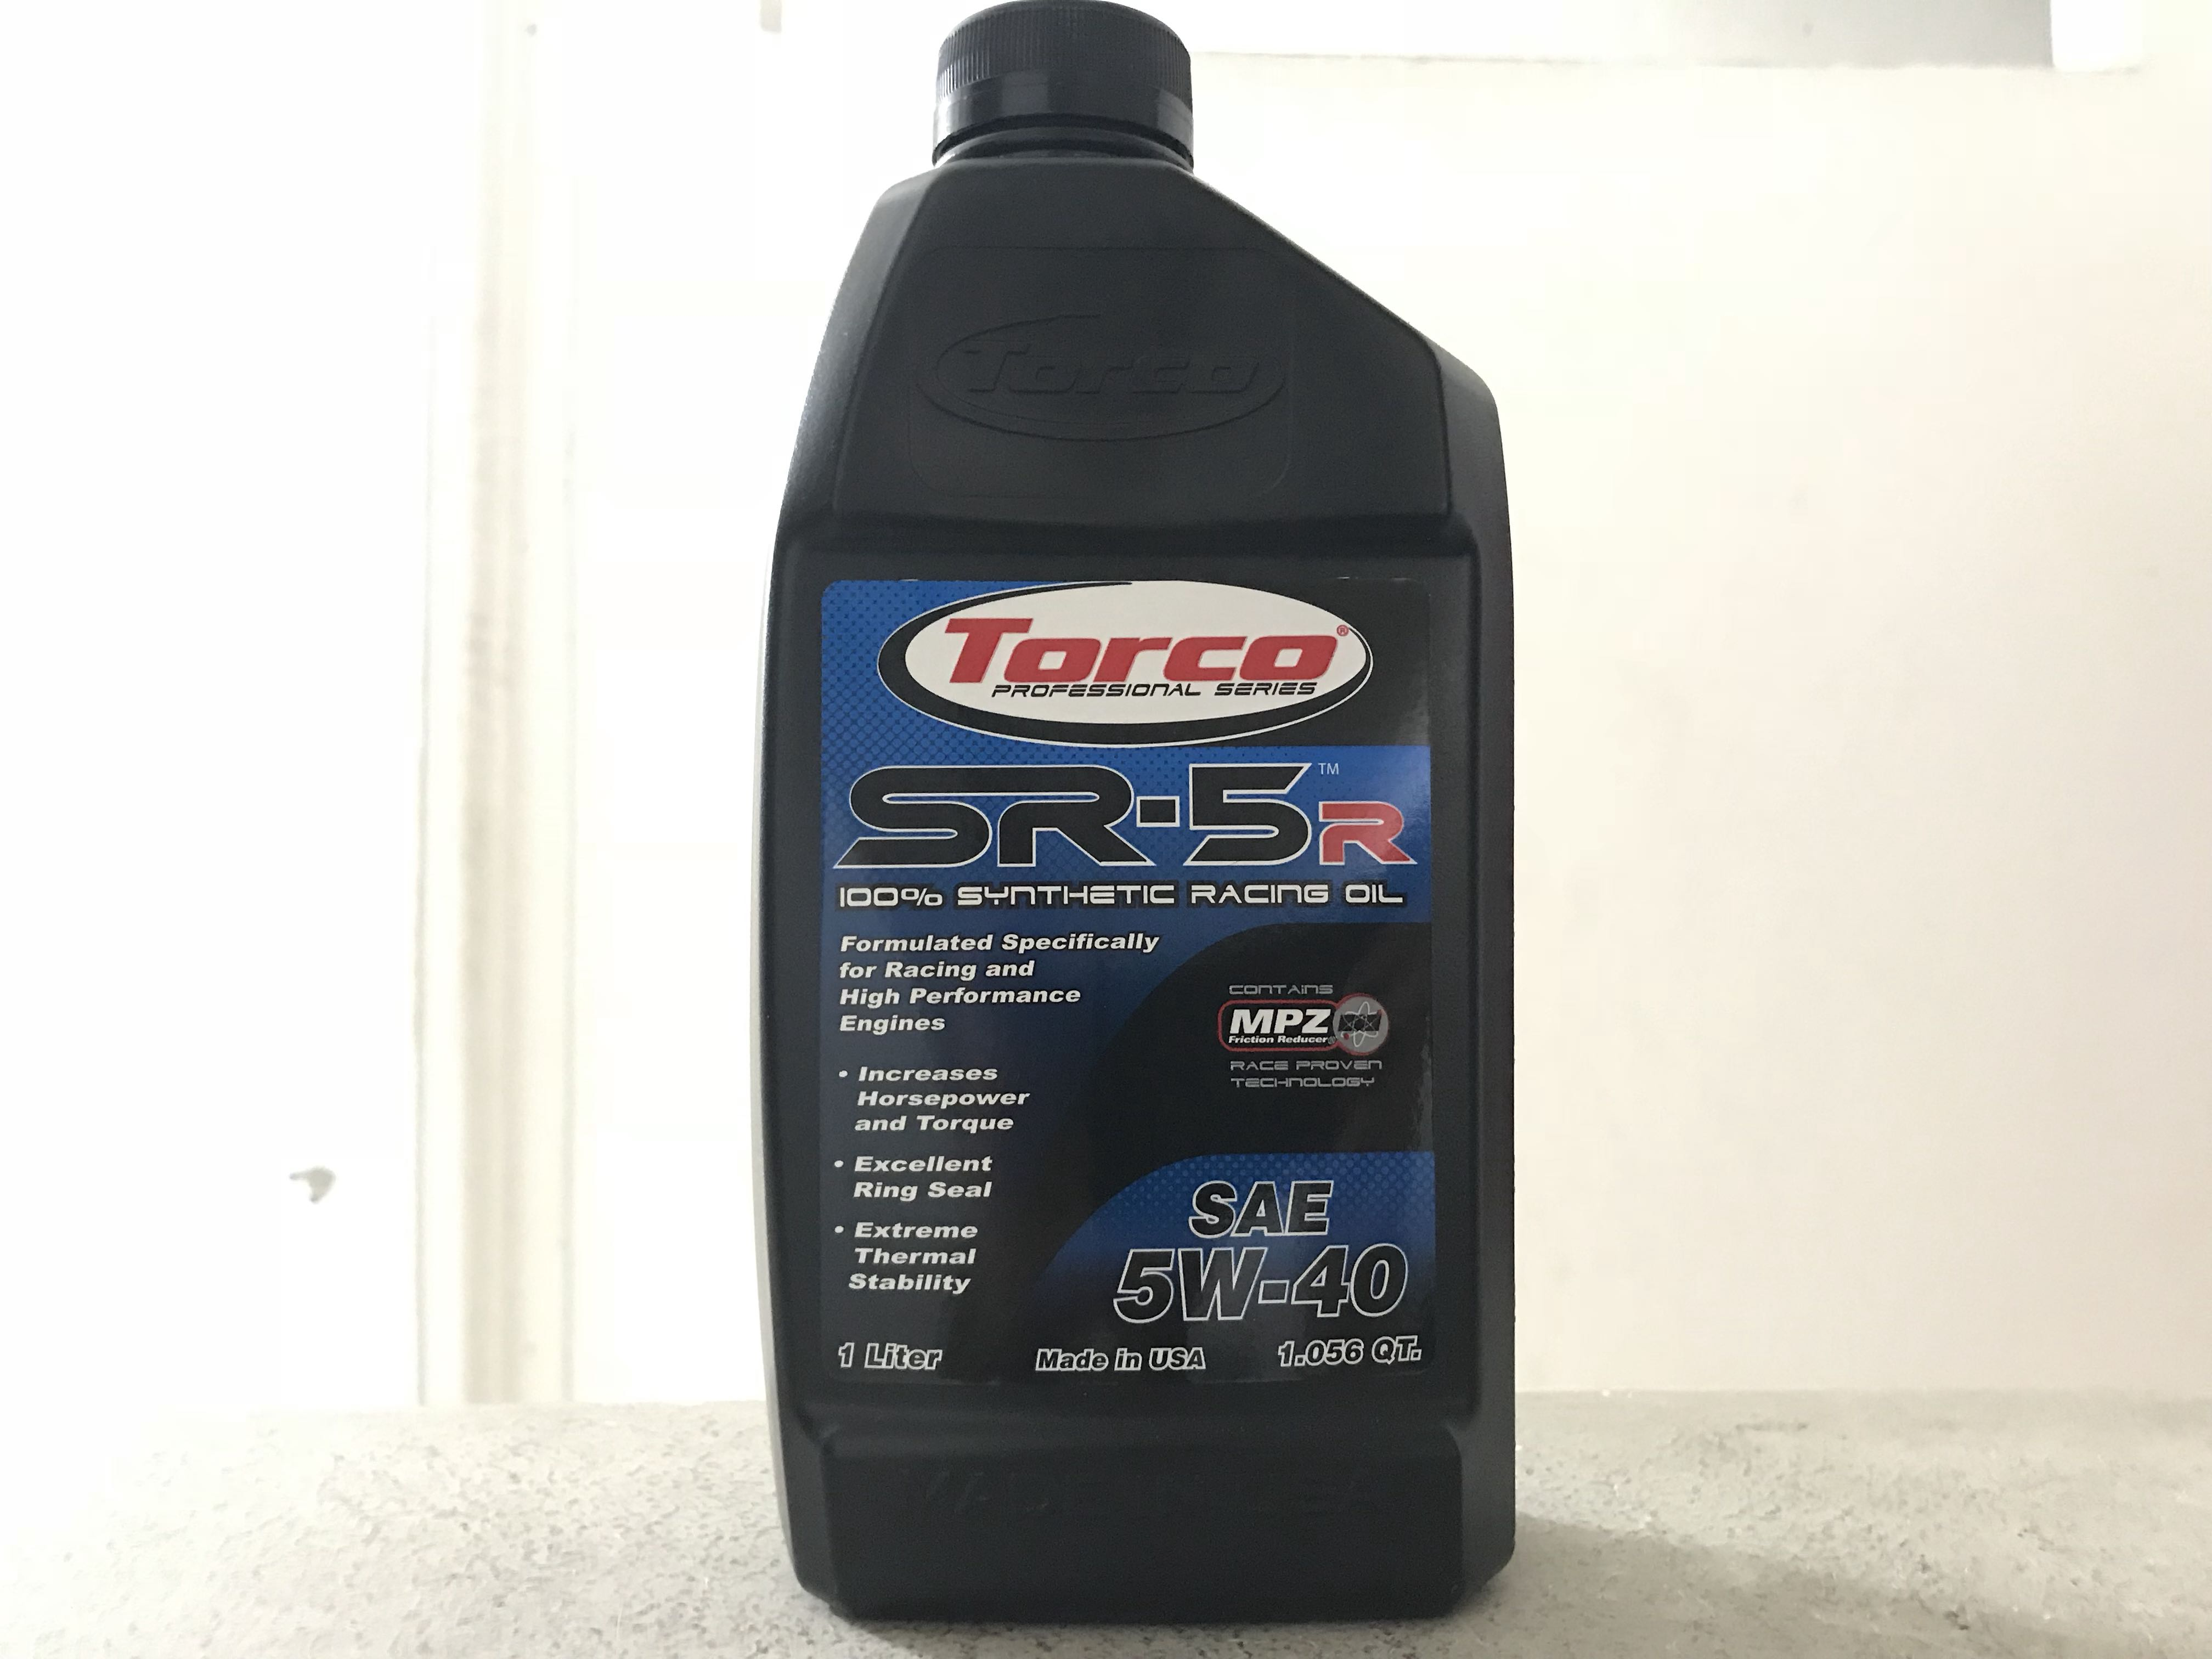 Torco SR-5R 5W-40 1 Liter Fully Synthetic Engine Oil